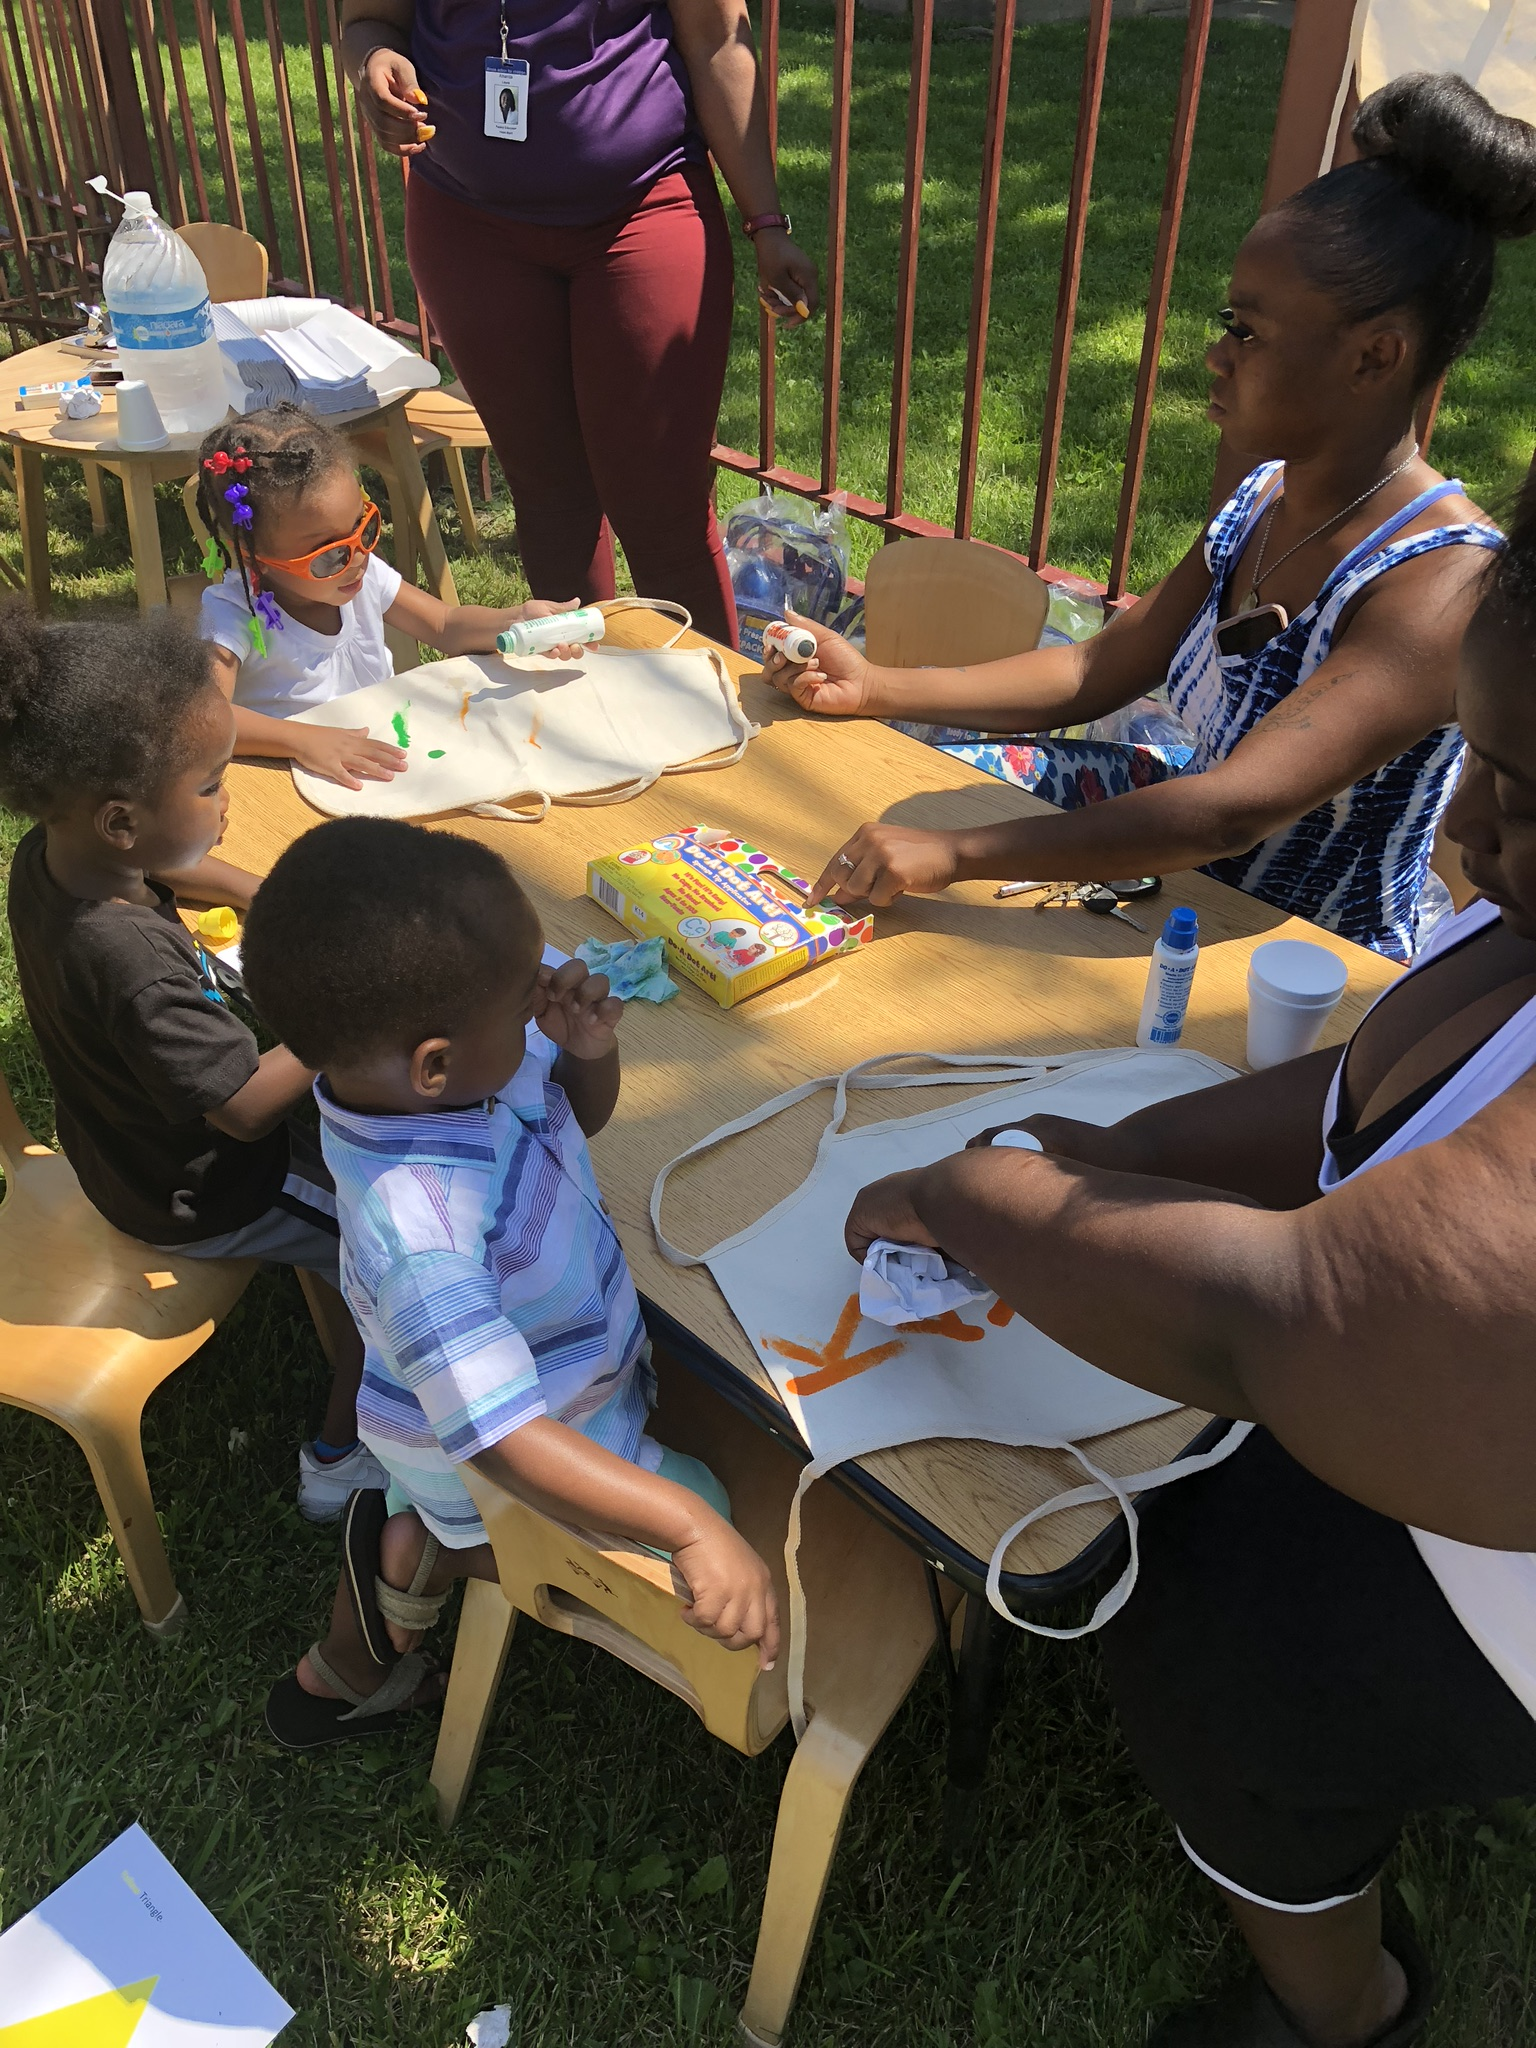 Ford Heights Painting Activity